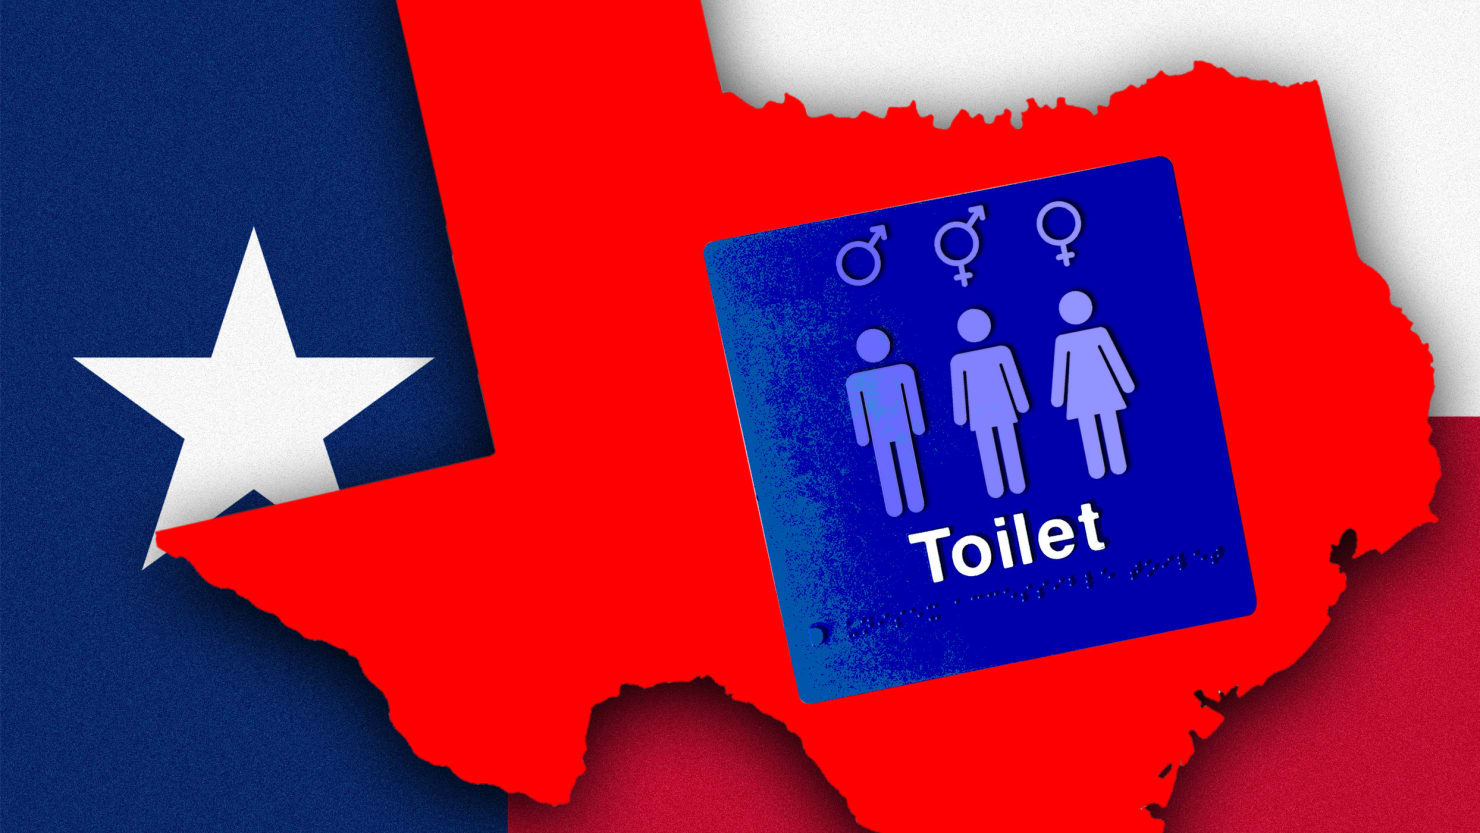 Bathroom Bill Texas texas senate passes bathroom bill over protesters' shouts